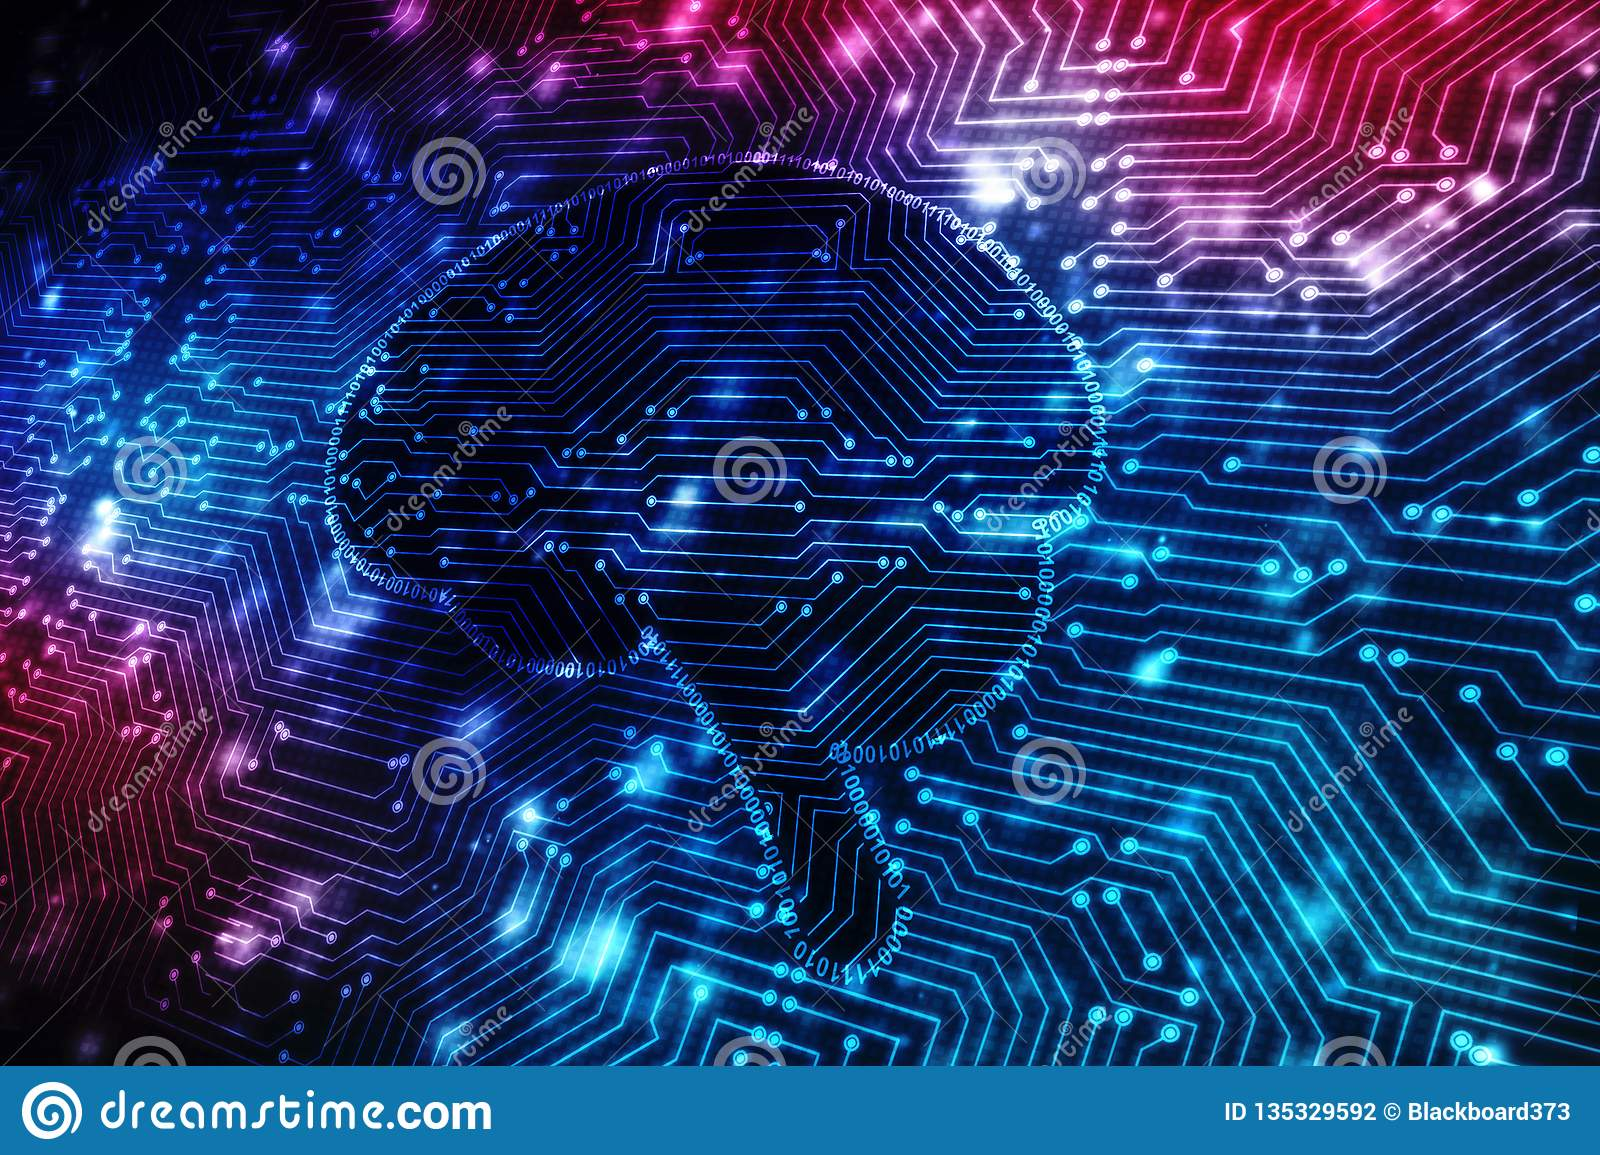 Digital illustration of Human brain structure, Creative brain concept background, innovation background